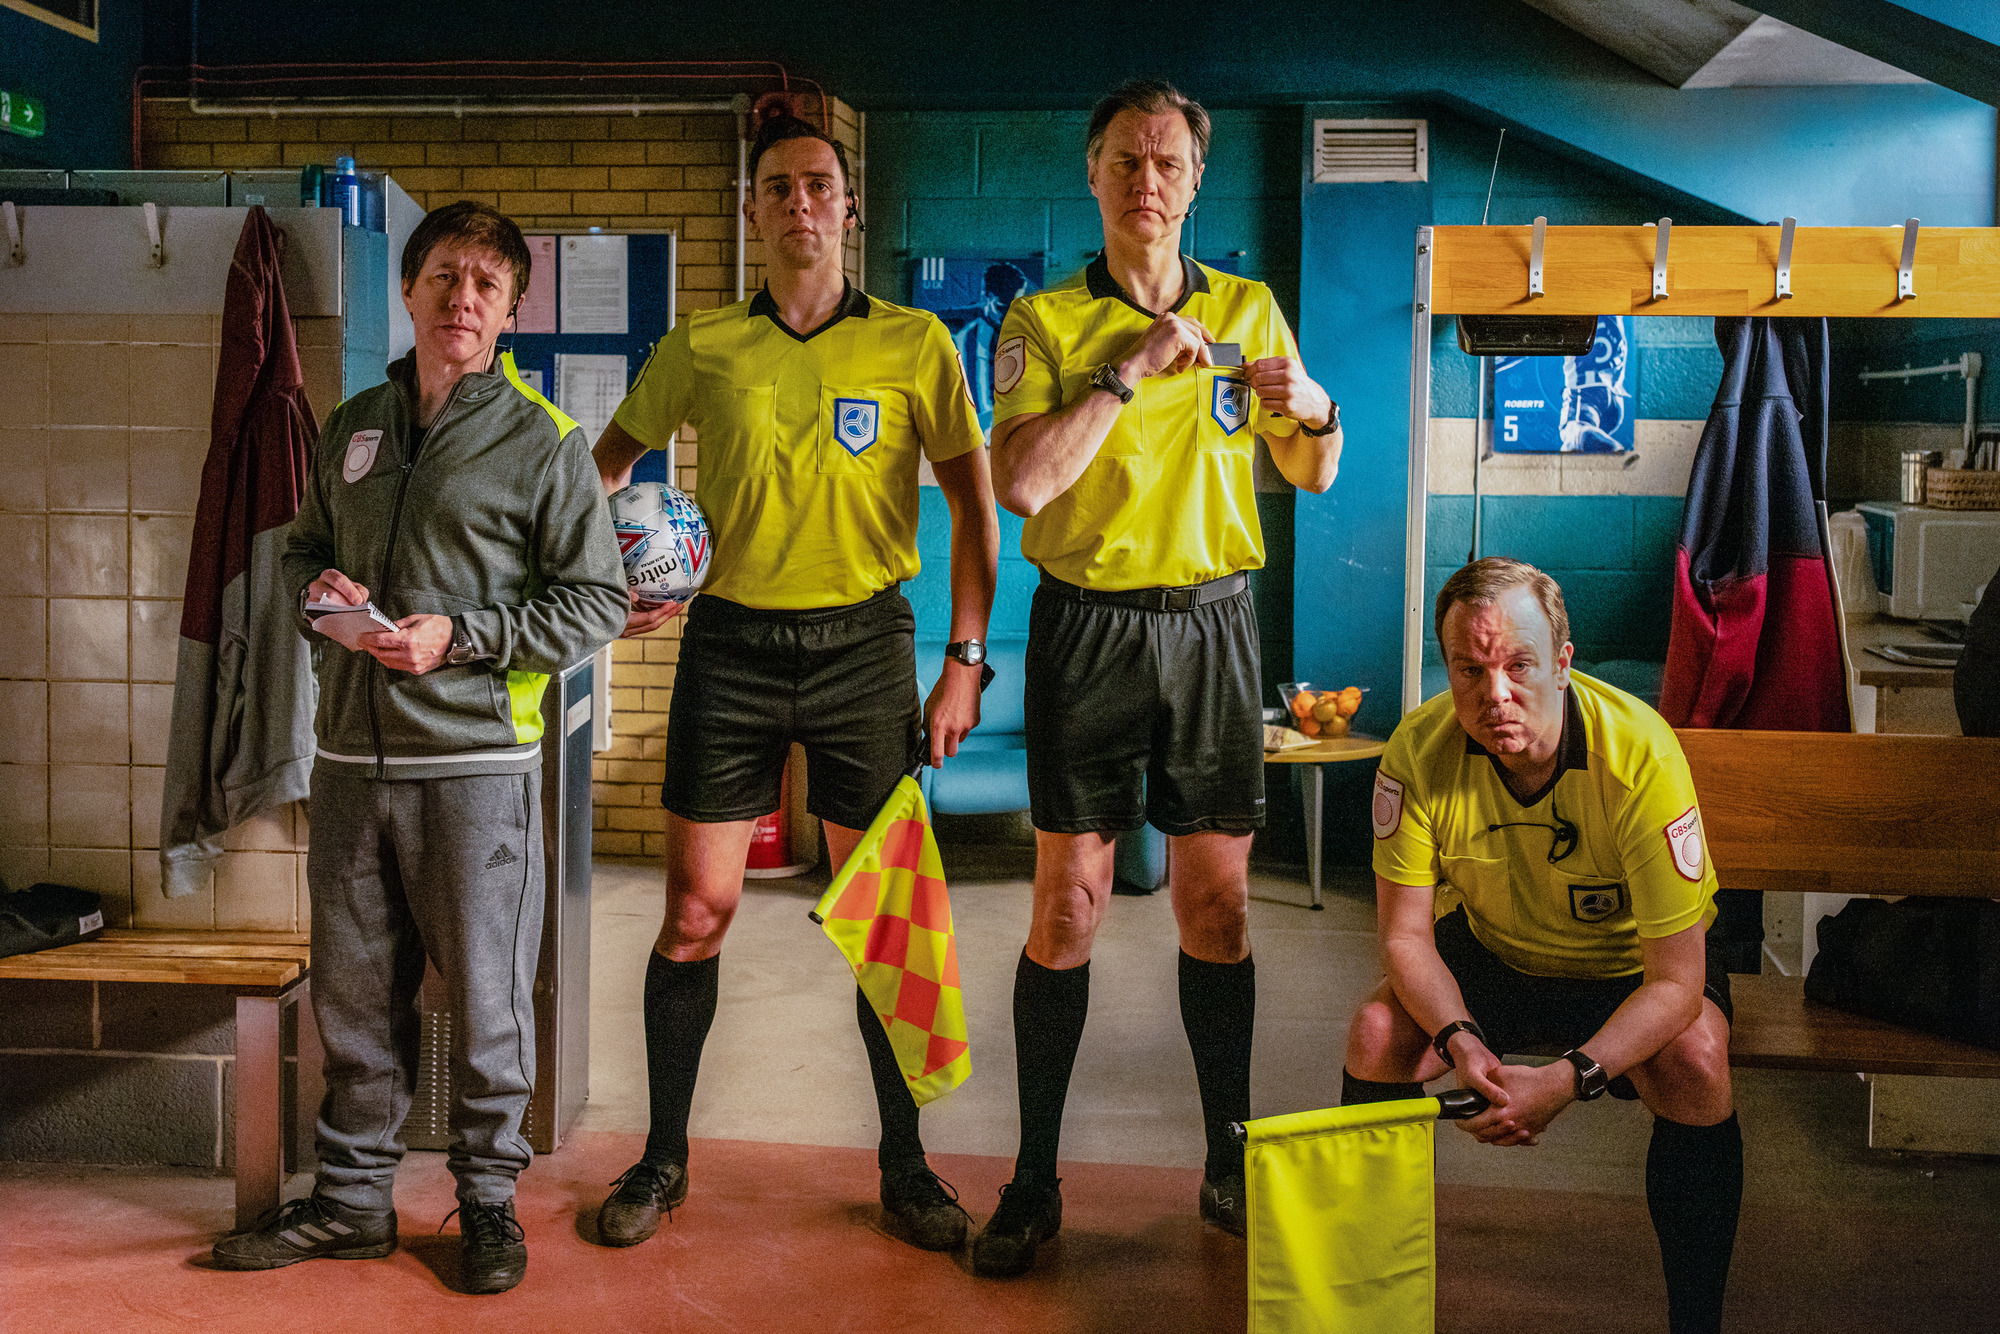 Inside No 9 Halloween Special 2020 BritBox Picks Up Latest Season Of Oddball UK Comedy 'Inside No. 9